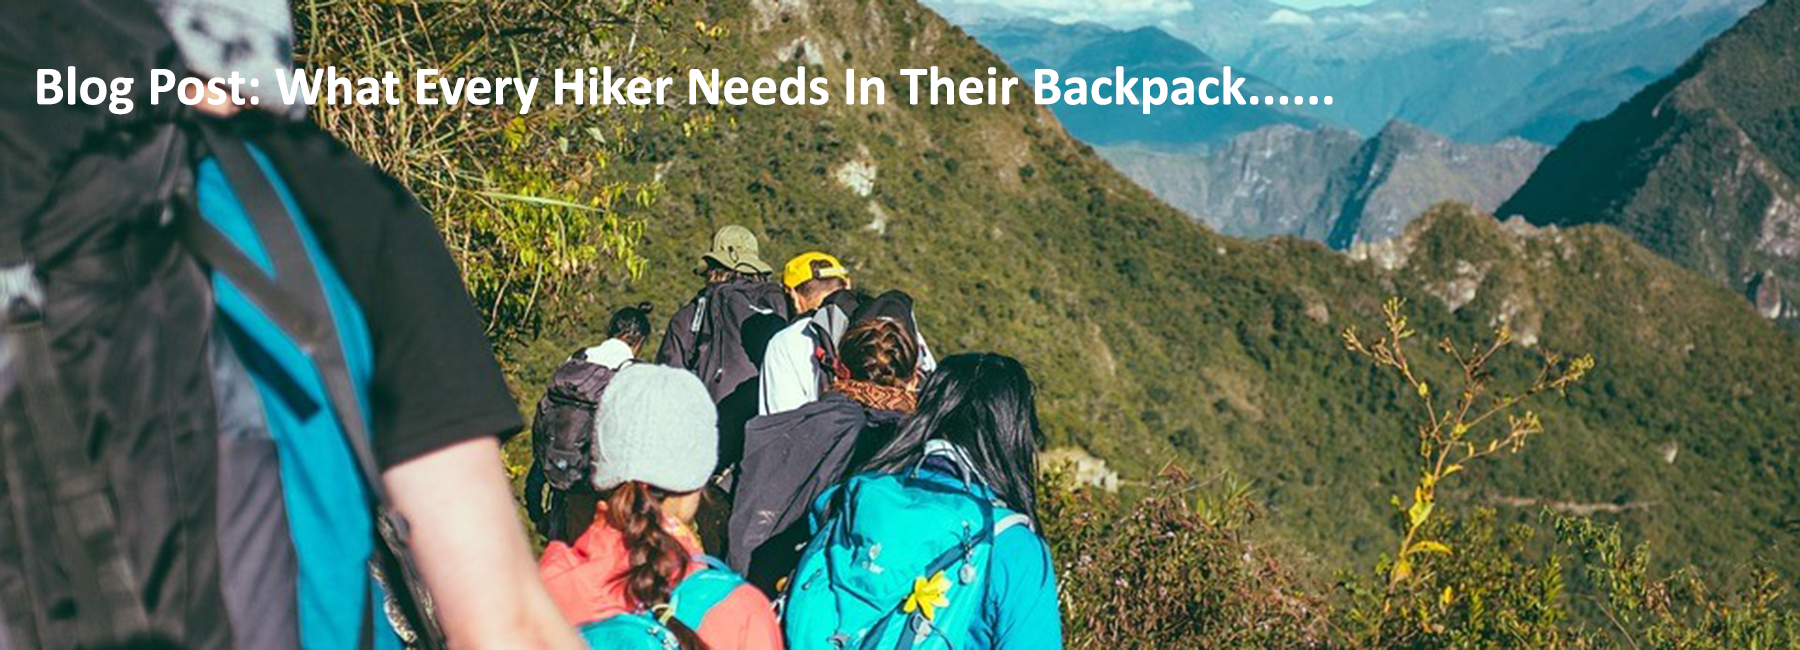 What Every Hiker Needs In Their Backpck